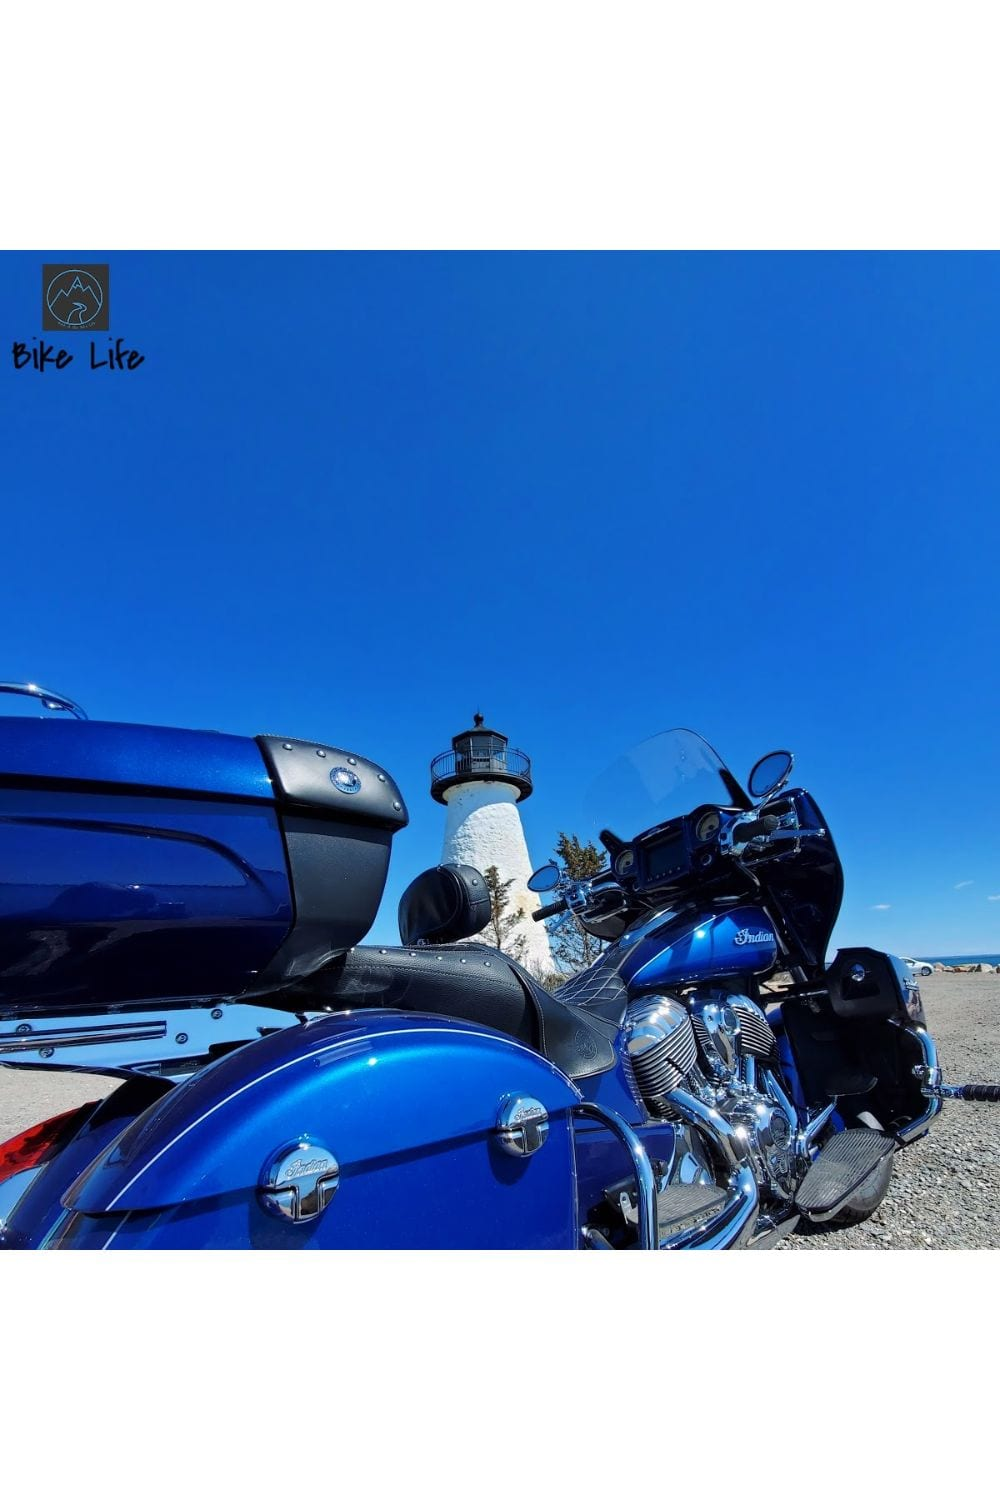 Motorcycle Safety Tips and Things to Remember for All Riding Levels